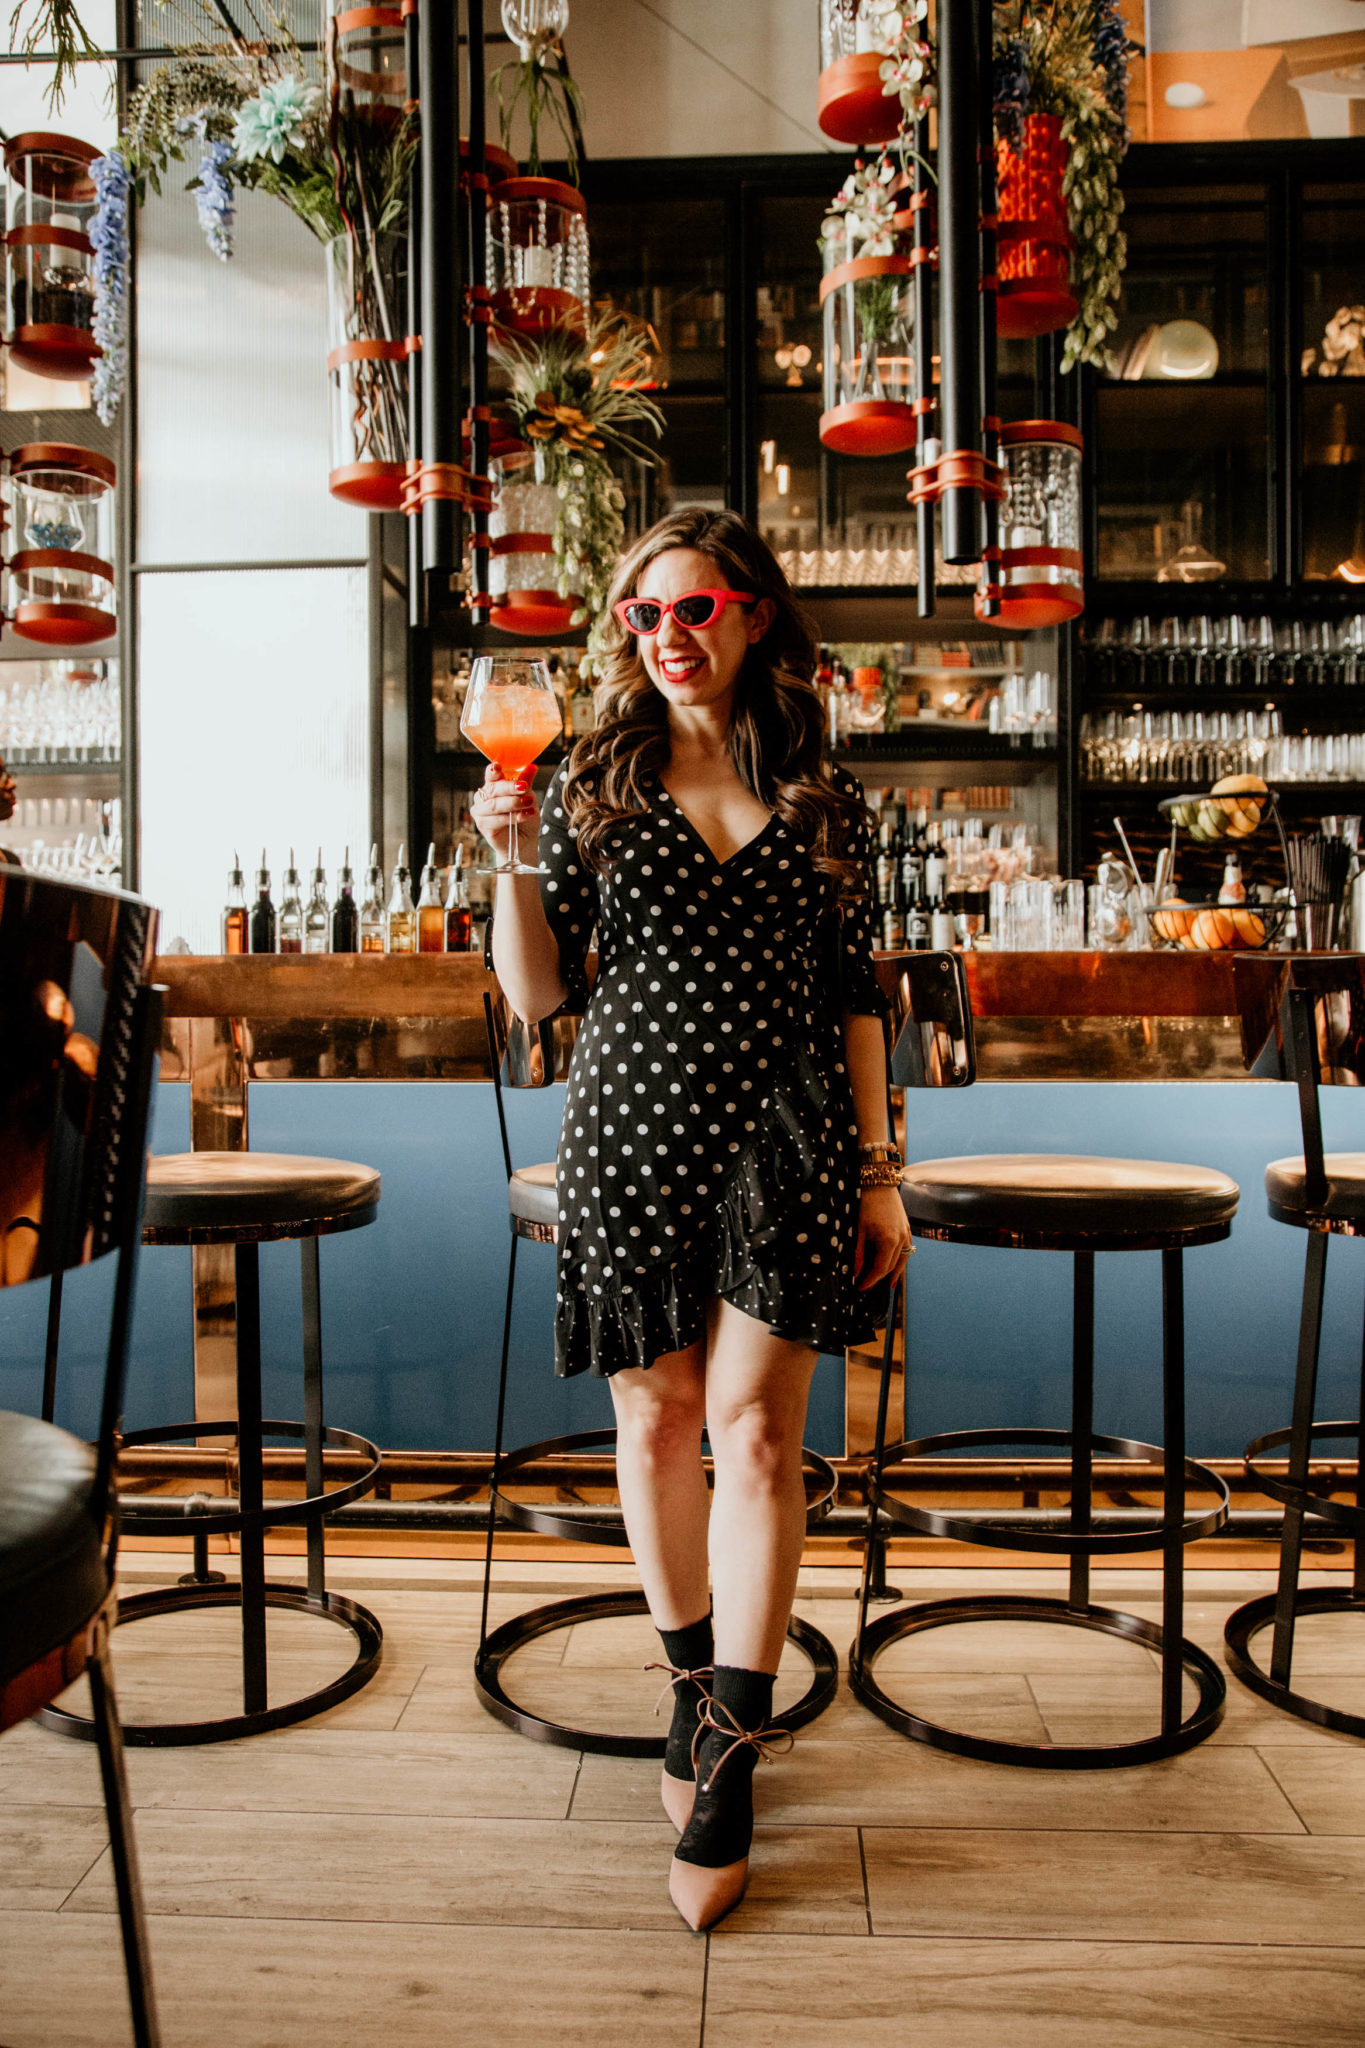 The Best Polka Dot Dress & On Mondays We Link Up featured by popular Chicago fashion blogger, Glass of Glam